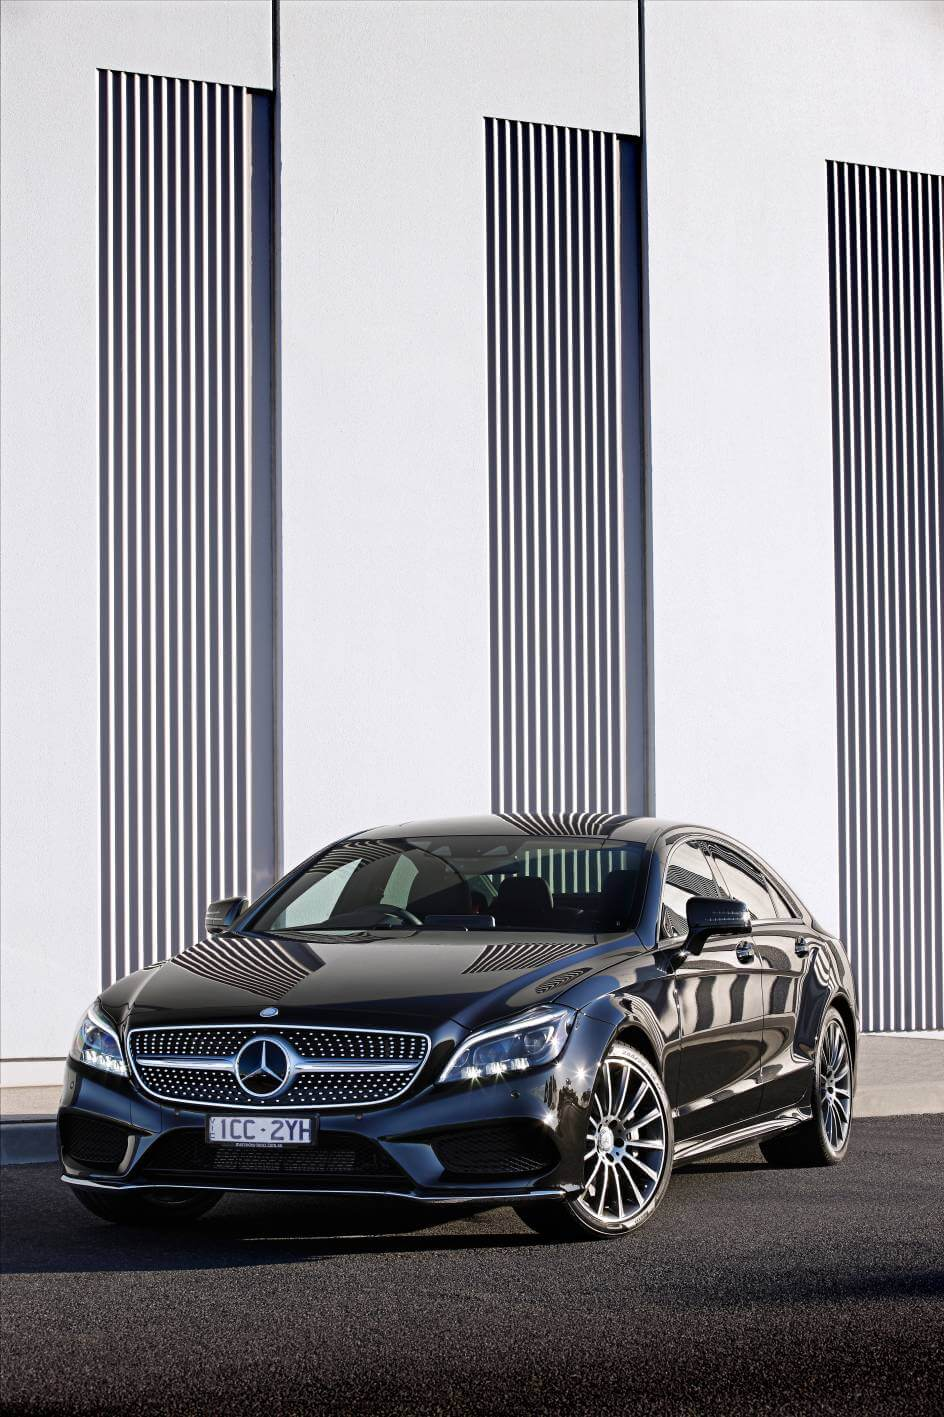 merc 39 s next gen cls class has arrived nz pricing. Black Bedroom Furniture Sets. Home Design Ideas